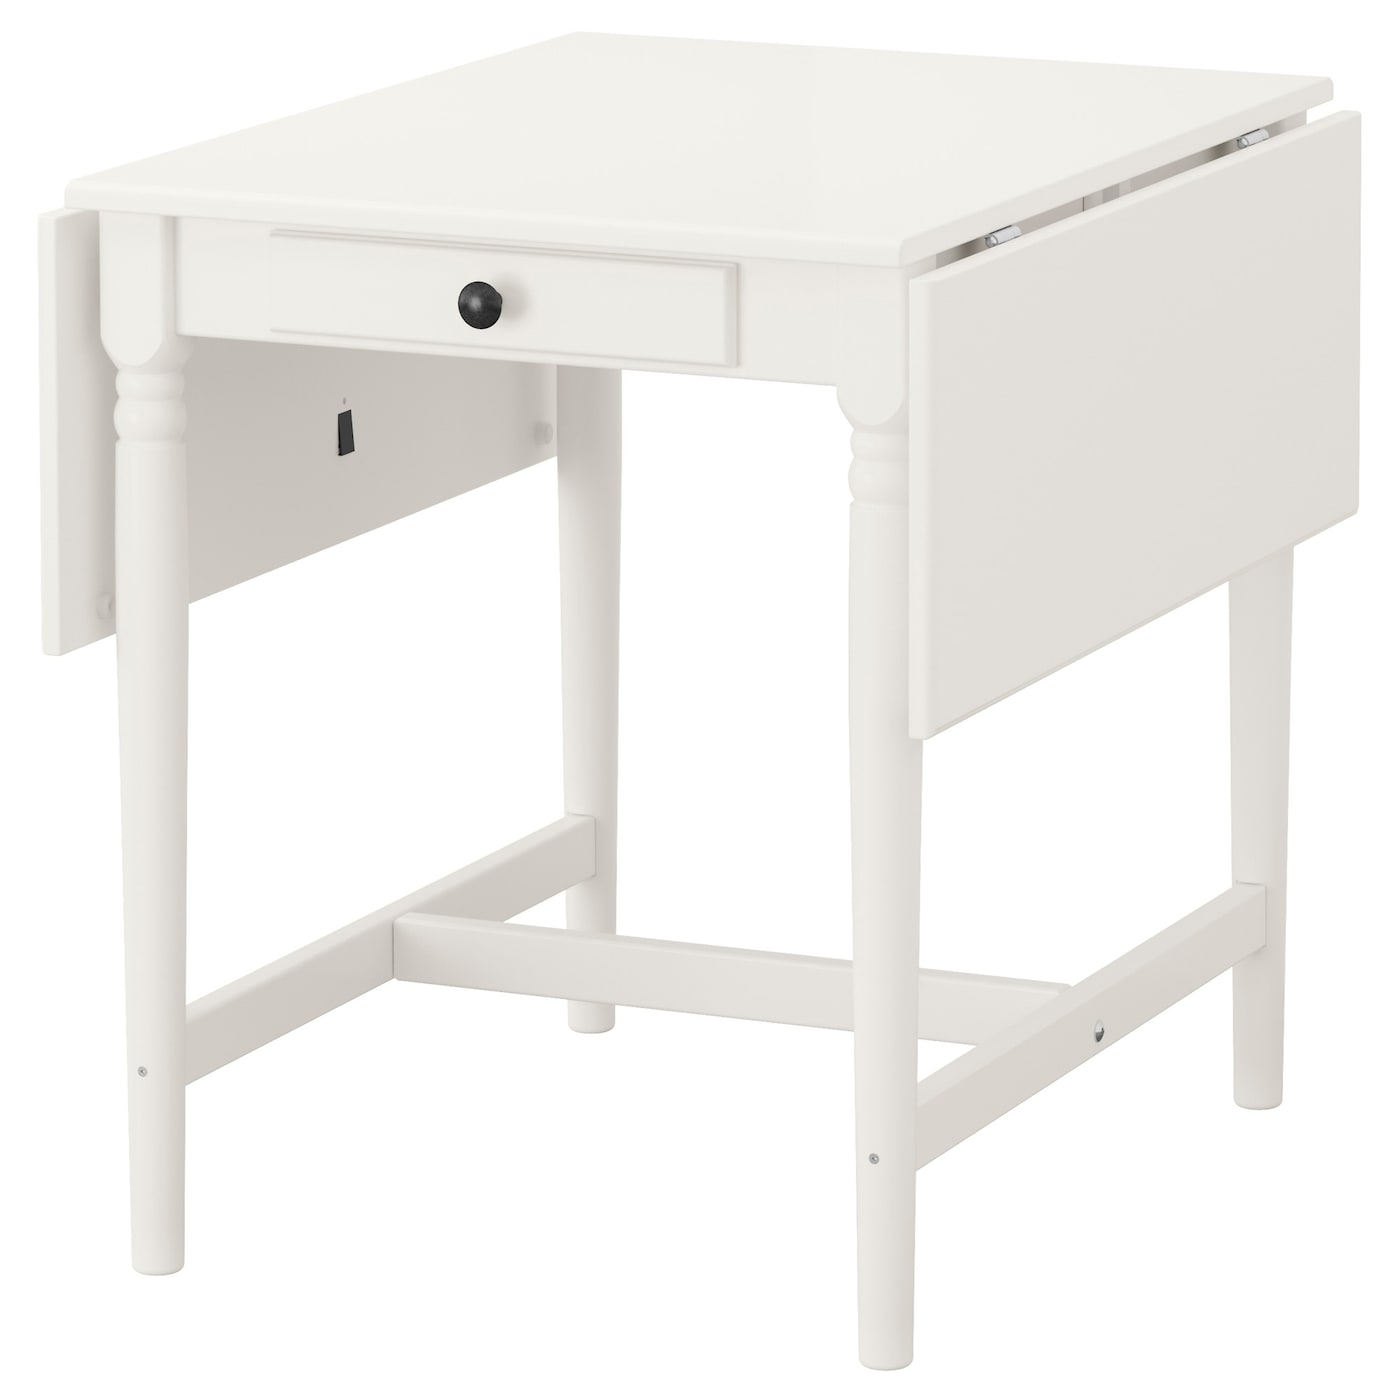 Ikea dining tables ikea ireland dublin - Petite table cuisine ikea ...